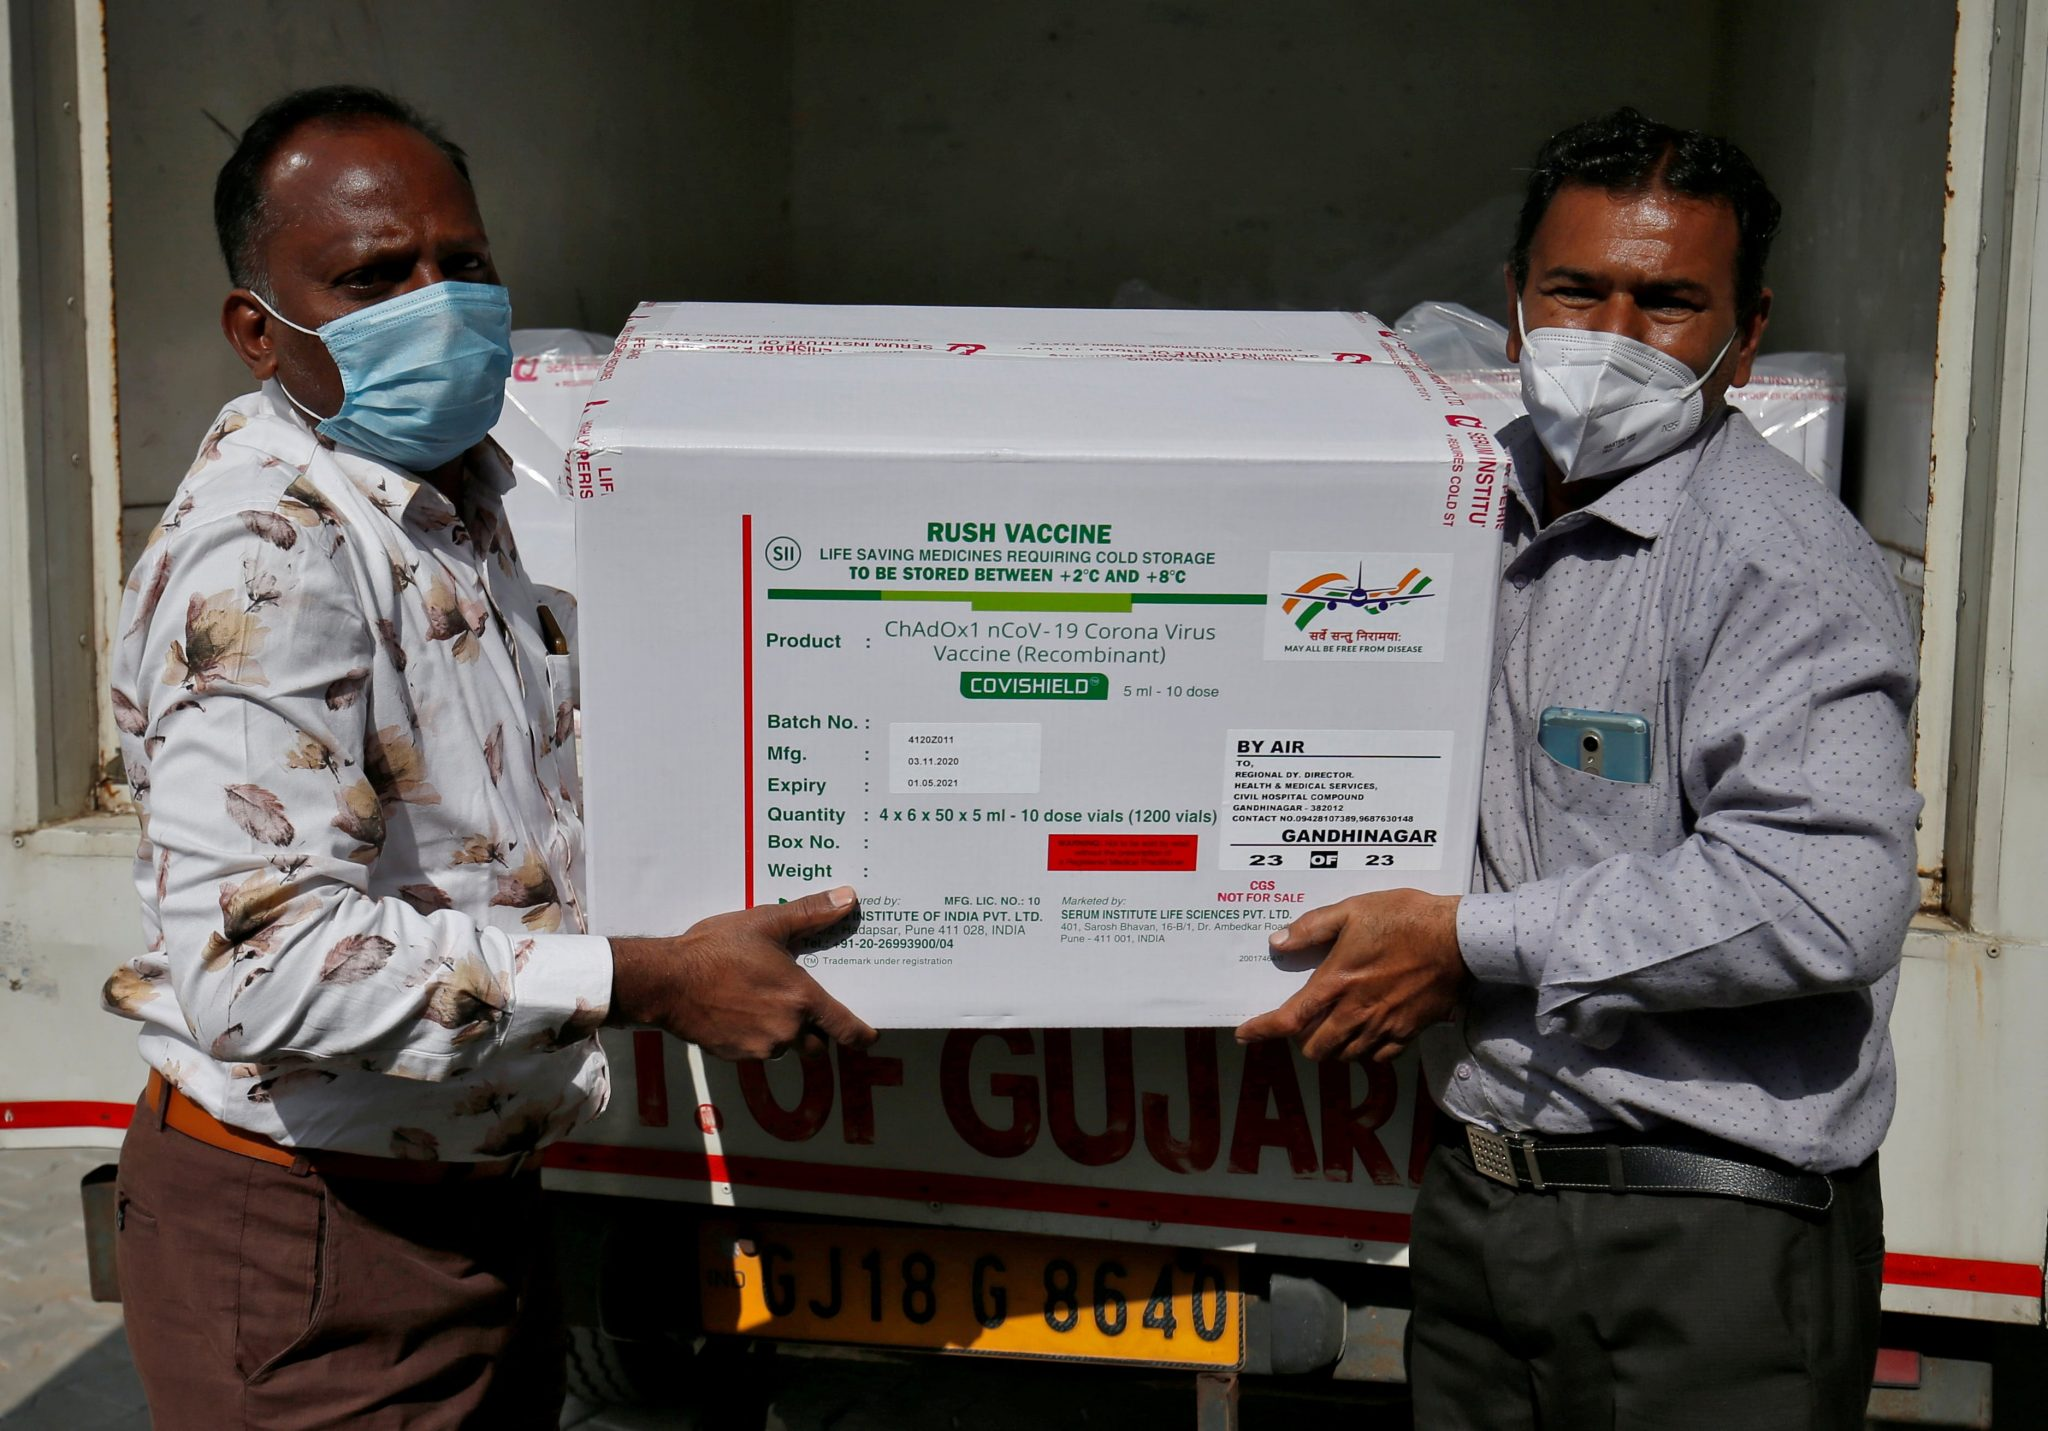 No end to COVID-19 pandemic absent international cooperation